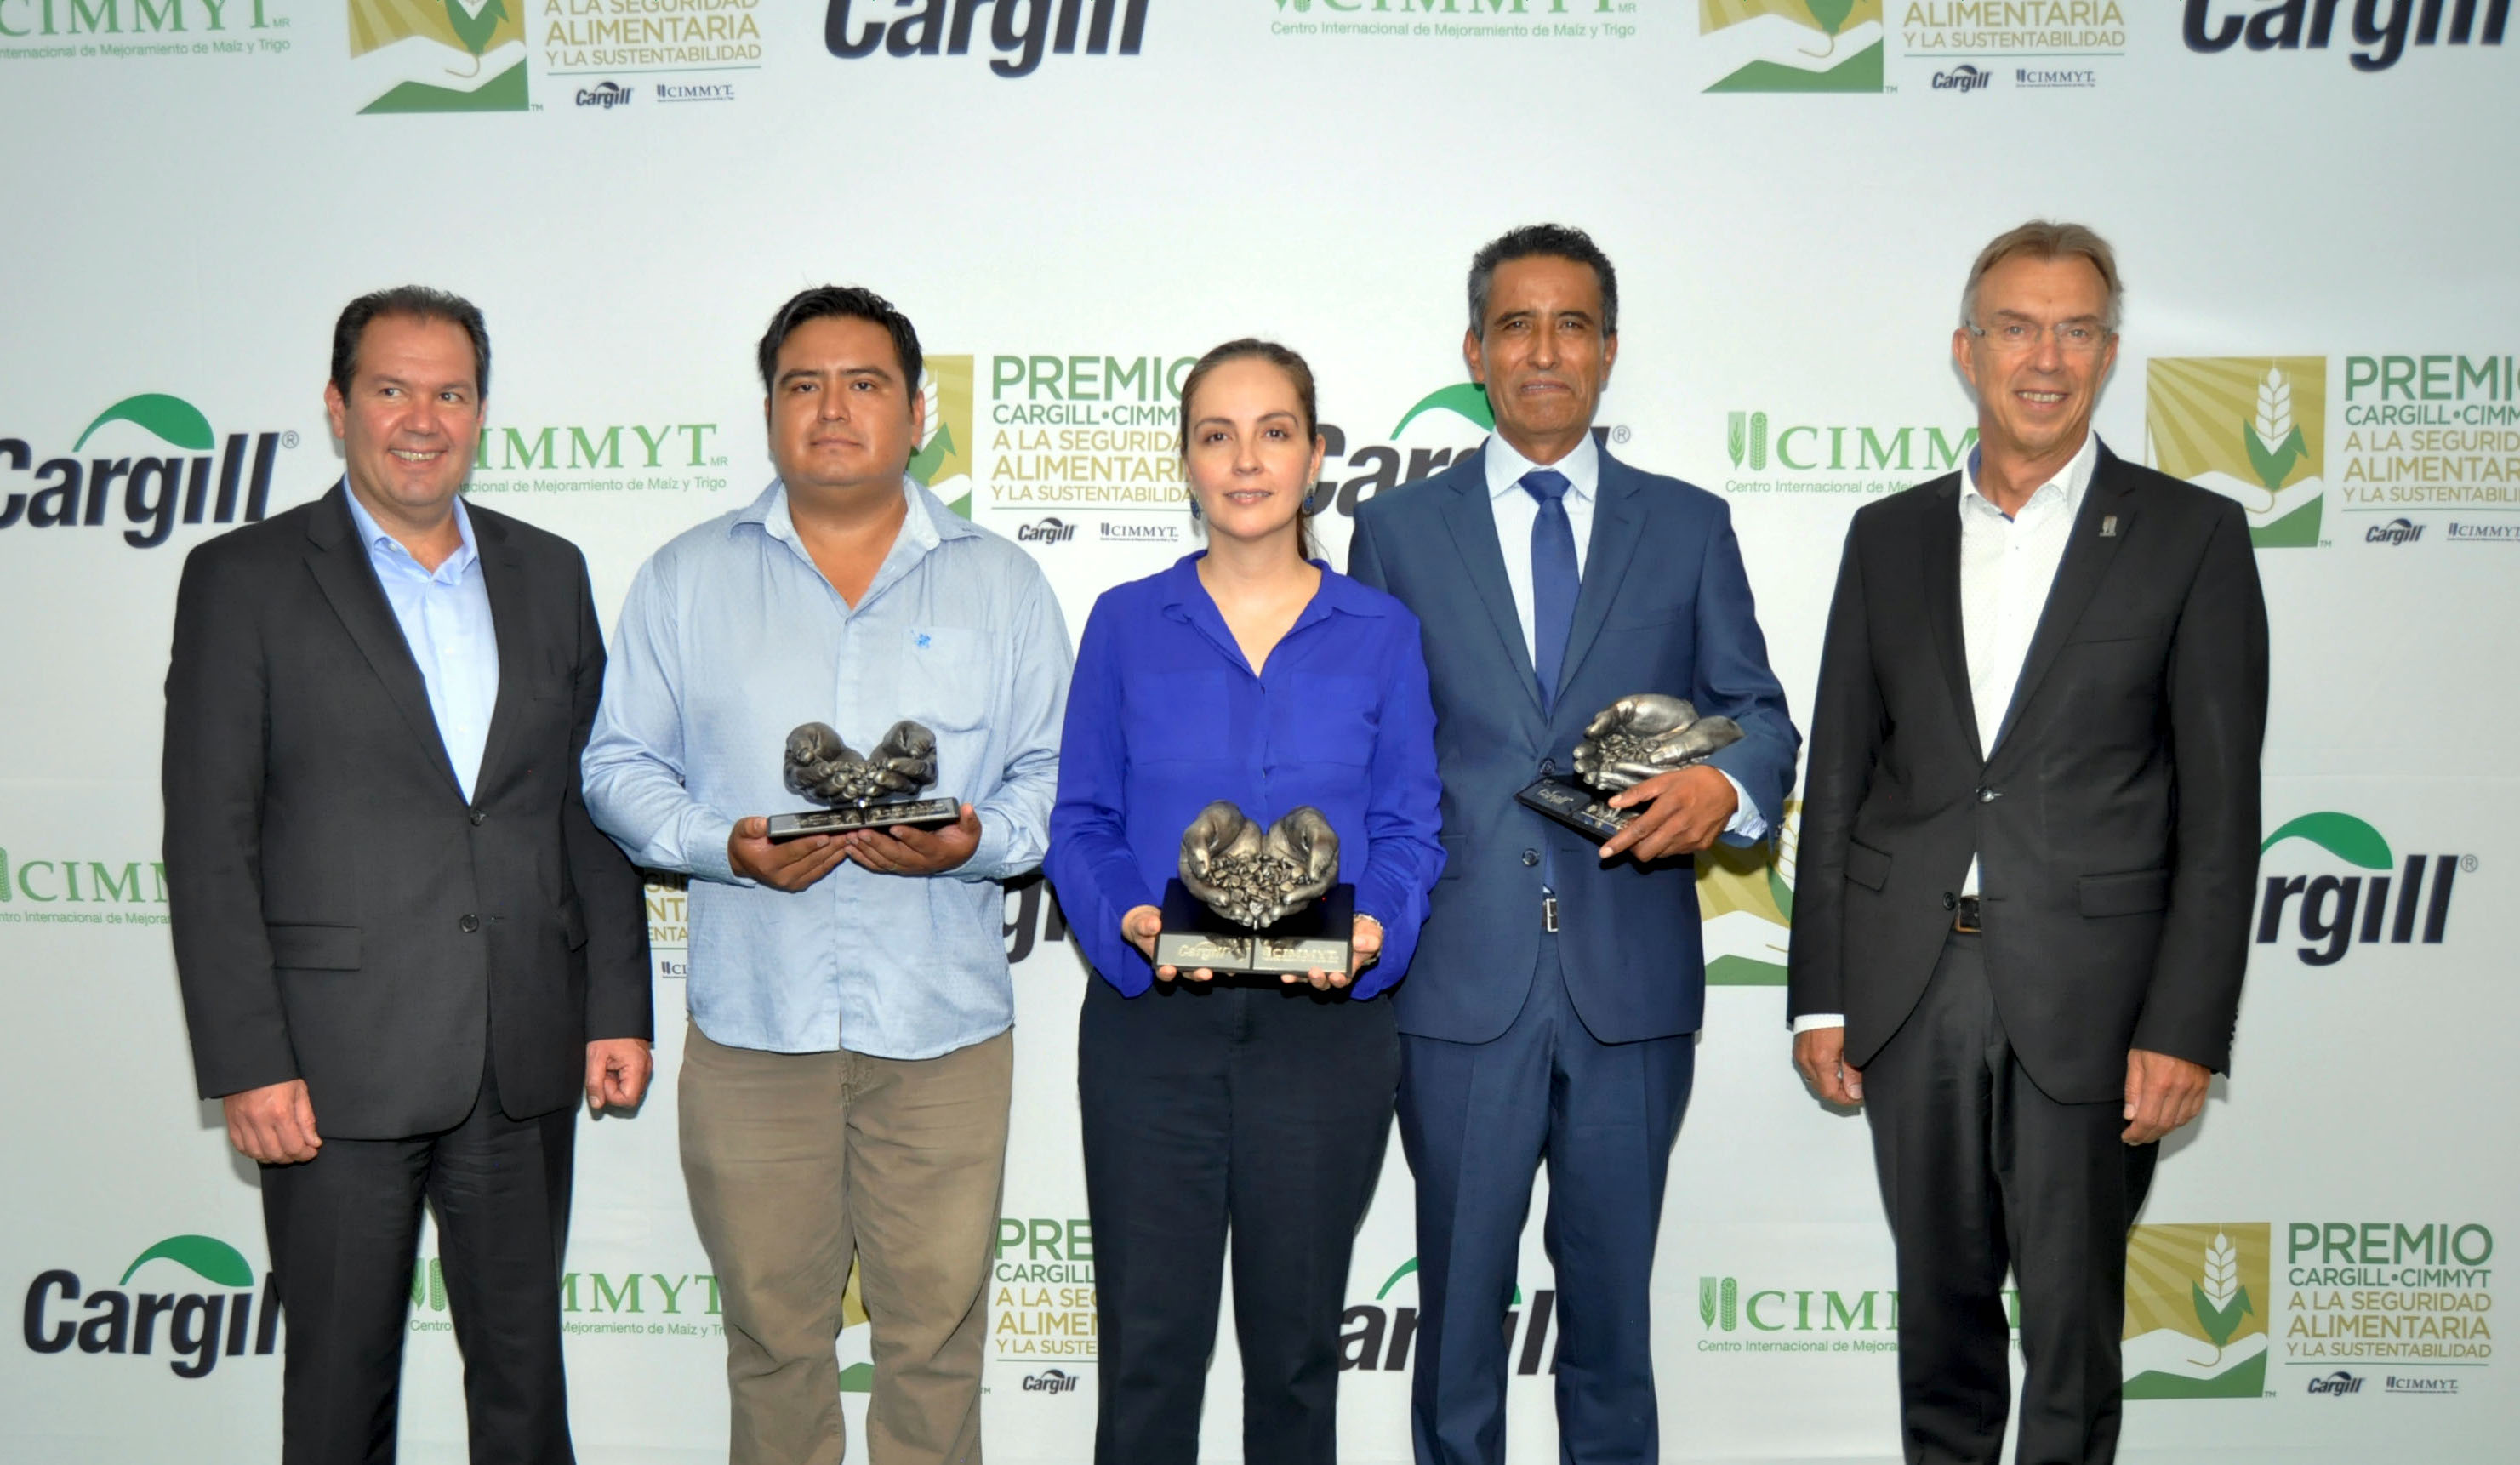 From left to right: Marcelo Martins, President of Cargill Mexico; Carlos Barragán, Farmers category winner; Citlali Fuentes, from Fundación Mexicana para el Desarrollo Rural, Opinion Leaders category winner; Mario López, Researchers category winner; and Martin Kropff, Director General of CIMMYT. (Photo: CIMMYT)